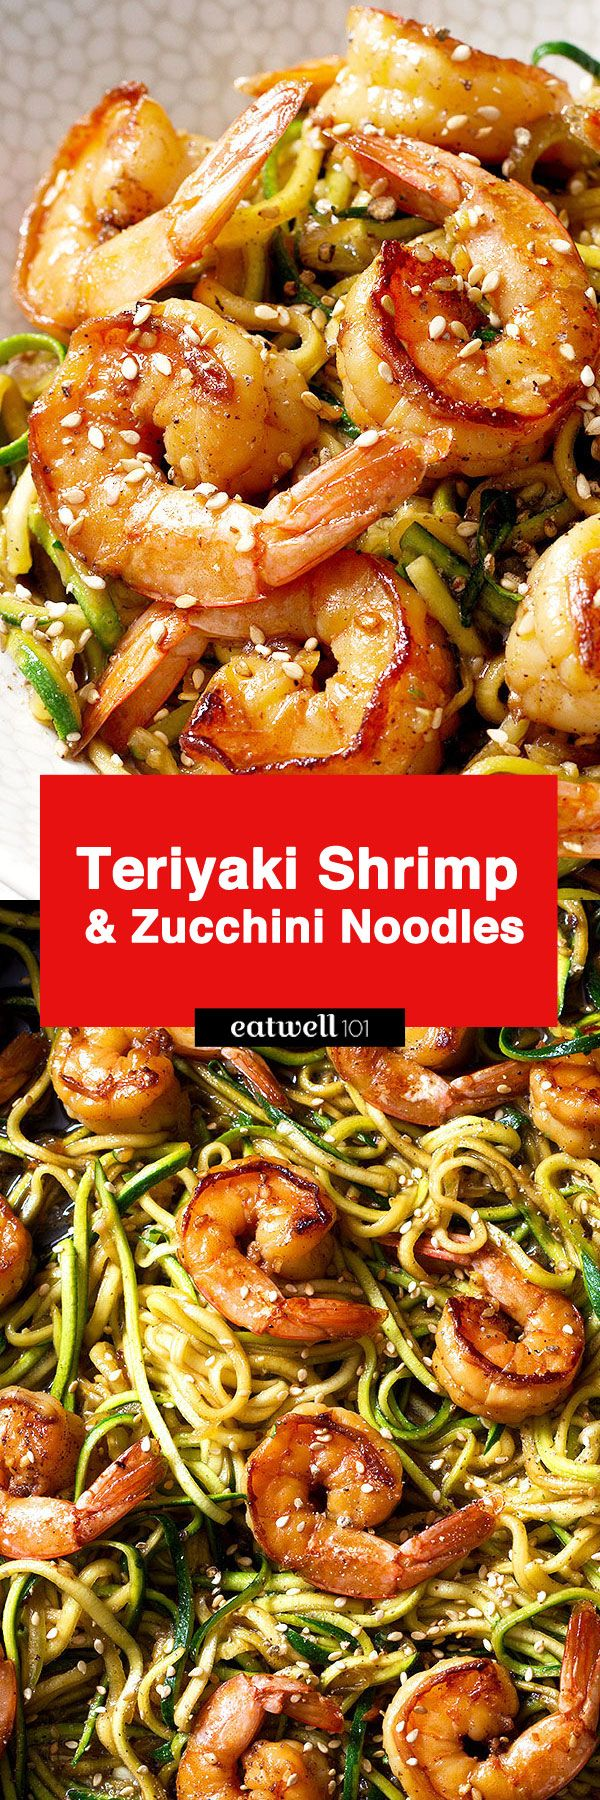 Stir fry teriyaki shrimp and zucchini noodles – A delicious, low-carb, healthy weeknight dinner made with spiralized zucchini and shrimp with teriyaki sauce and toasted sesame seeds. This stir fry …